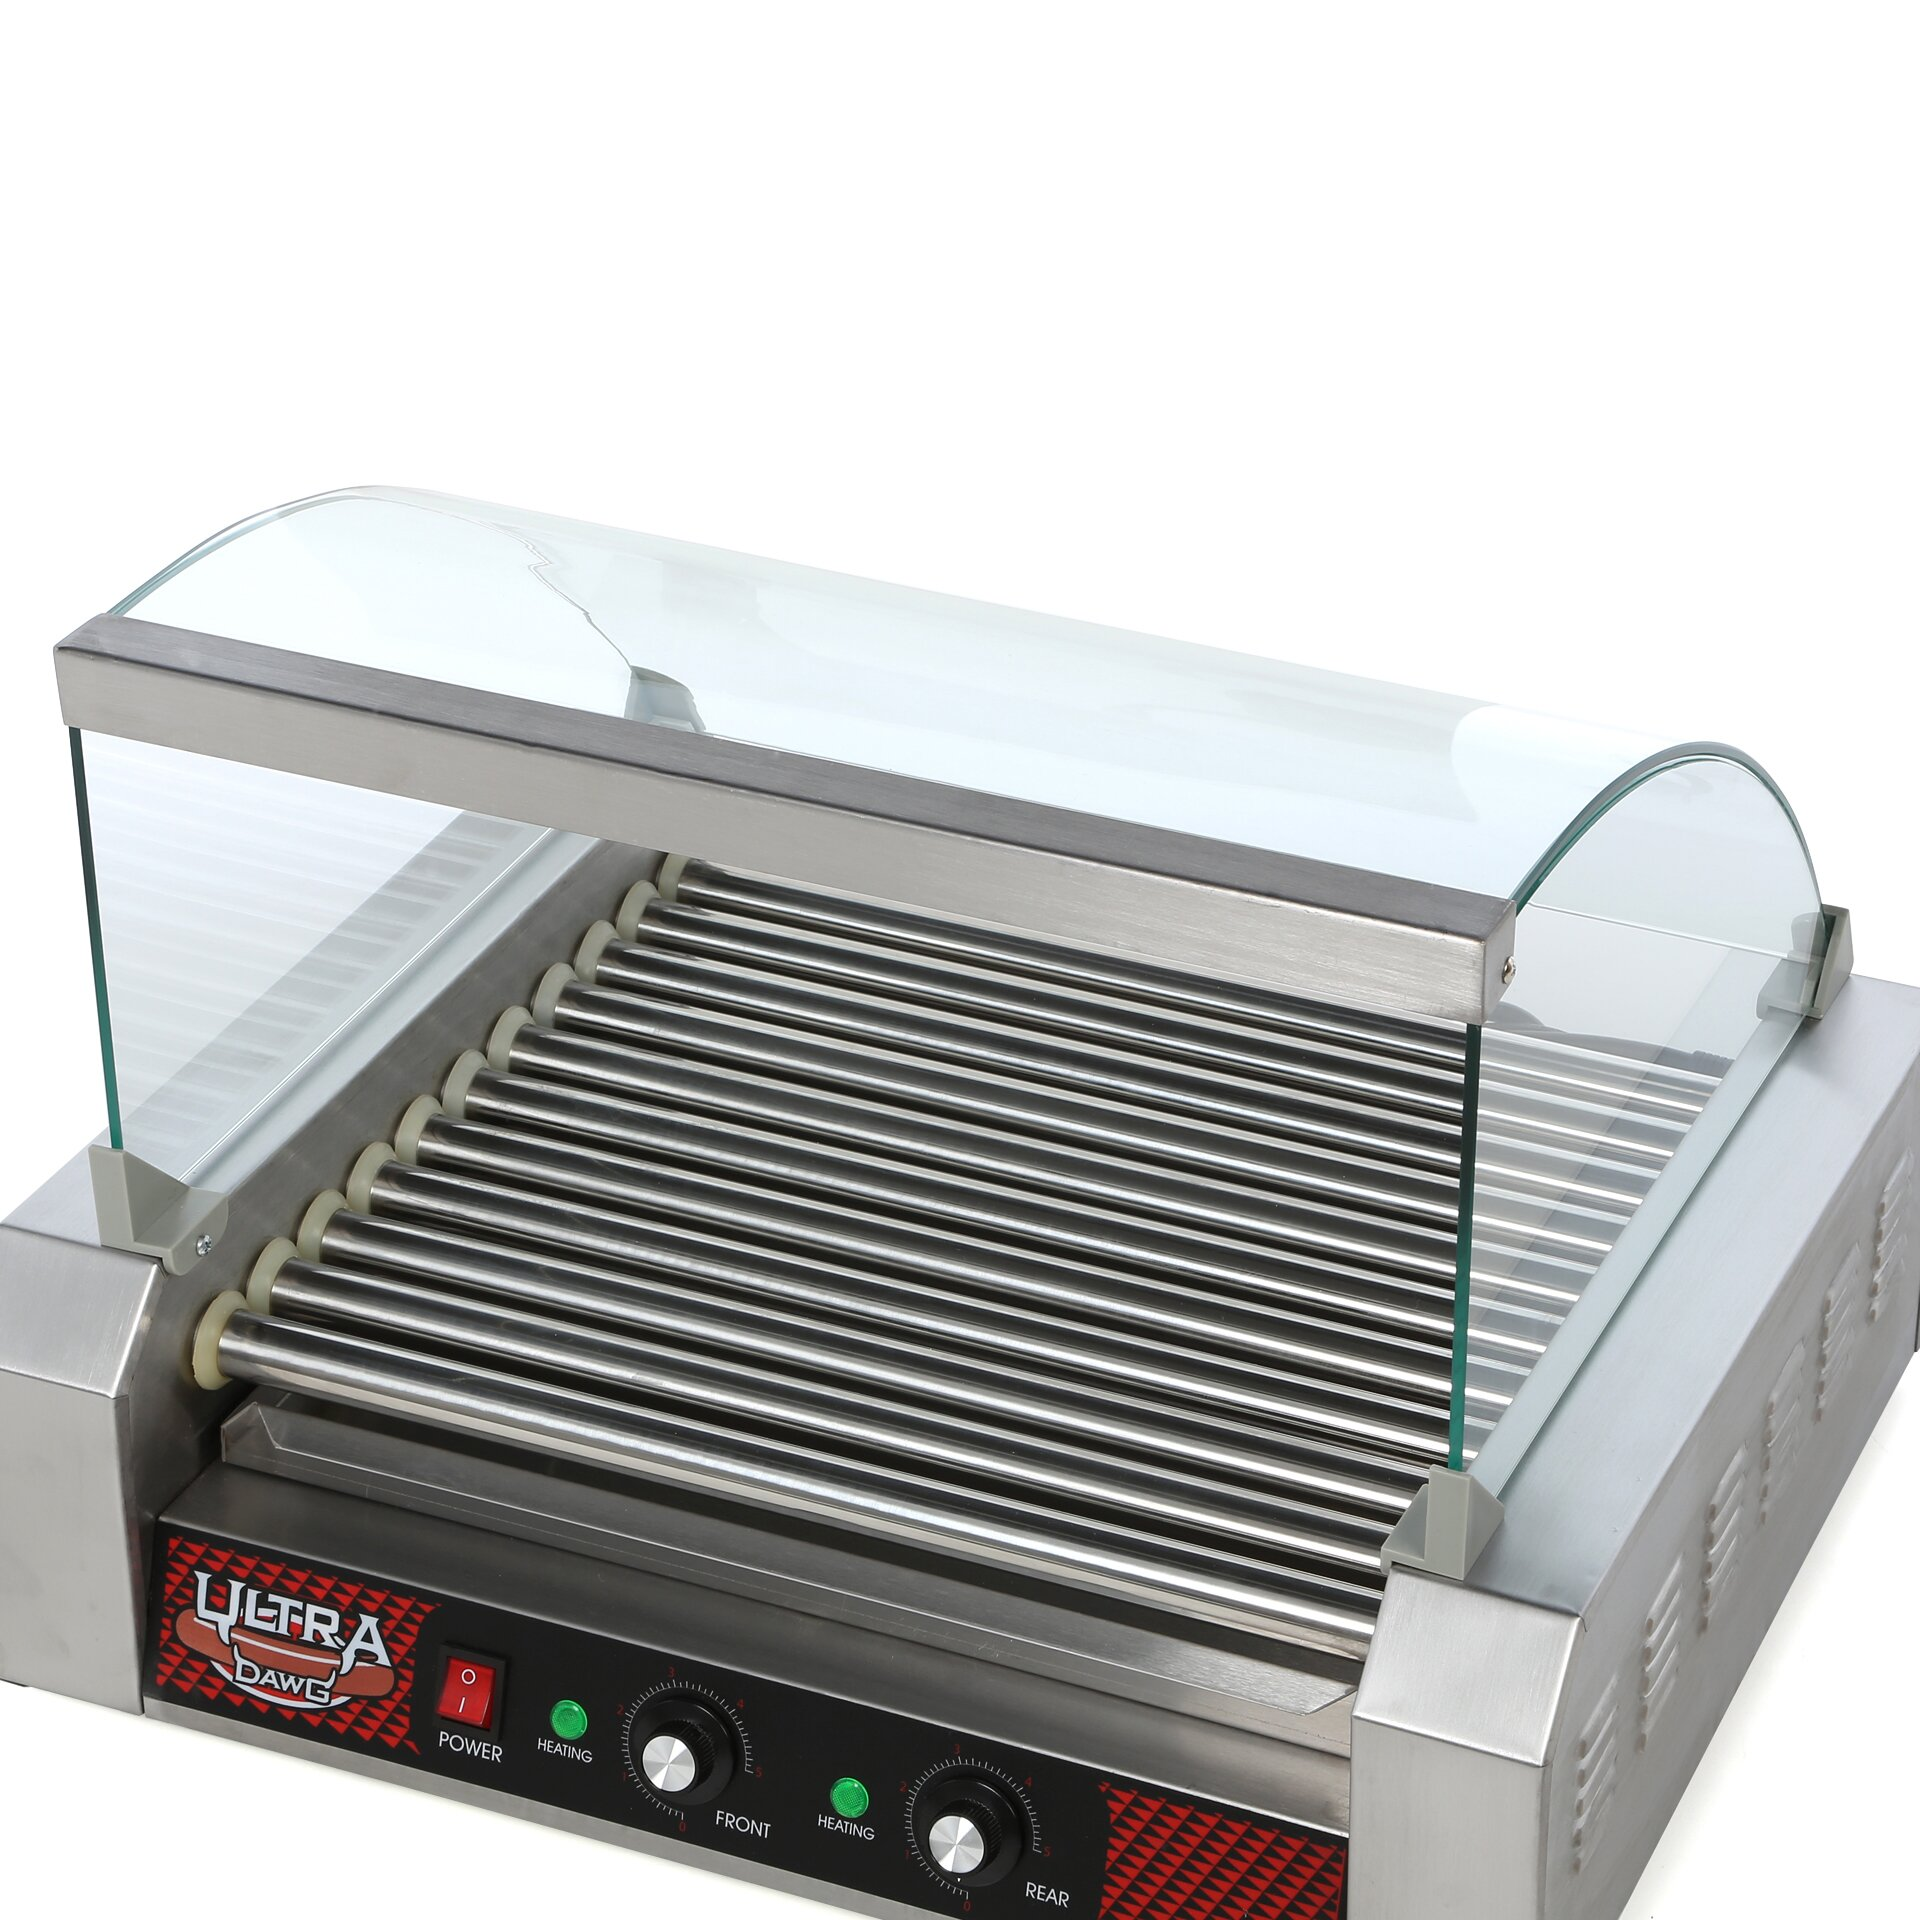 Uncategorized Hot Dog Cookers Specialty Kitchen Liances Great Northern Popcorn 11 Roller Commercial Machine